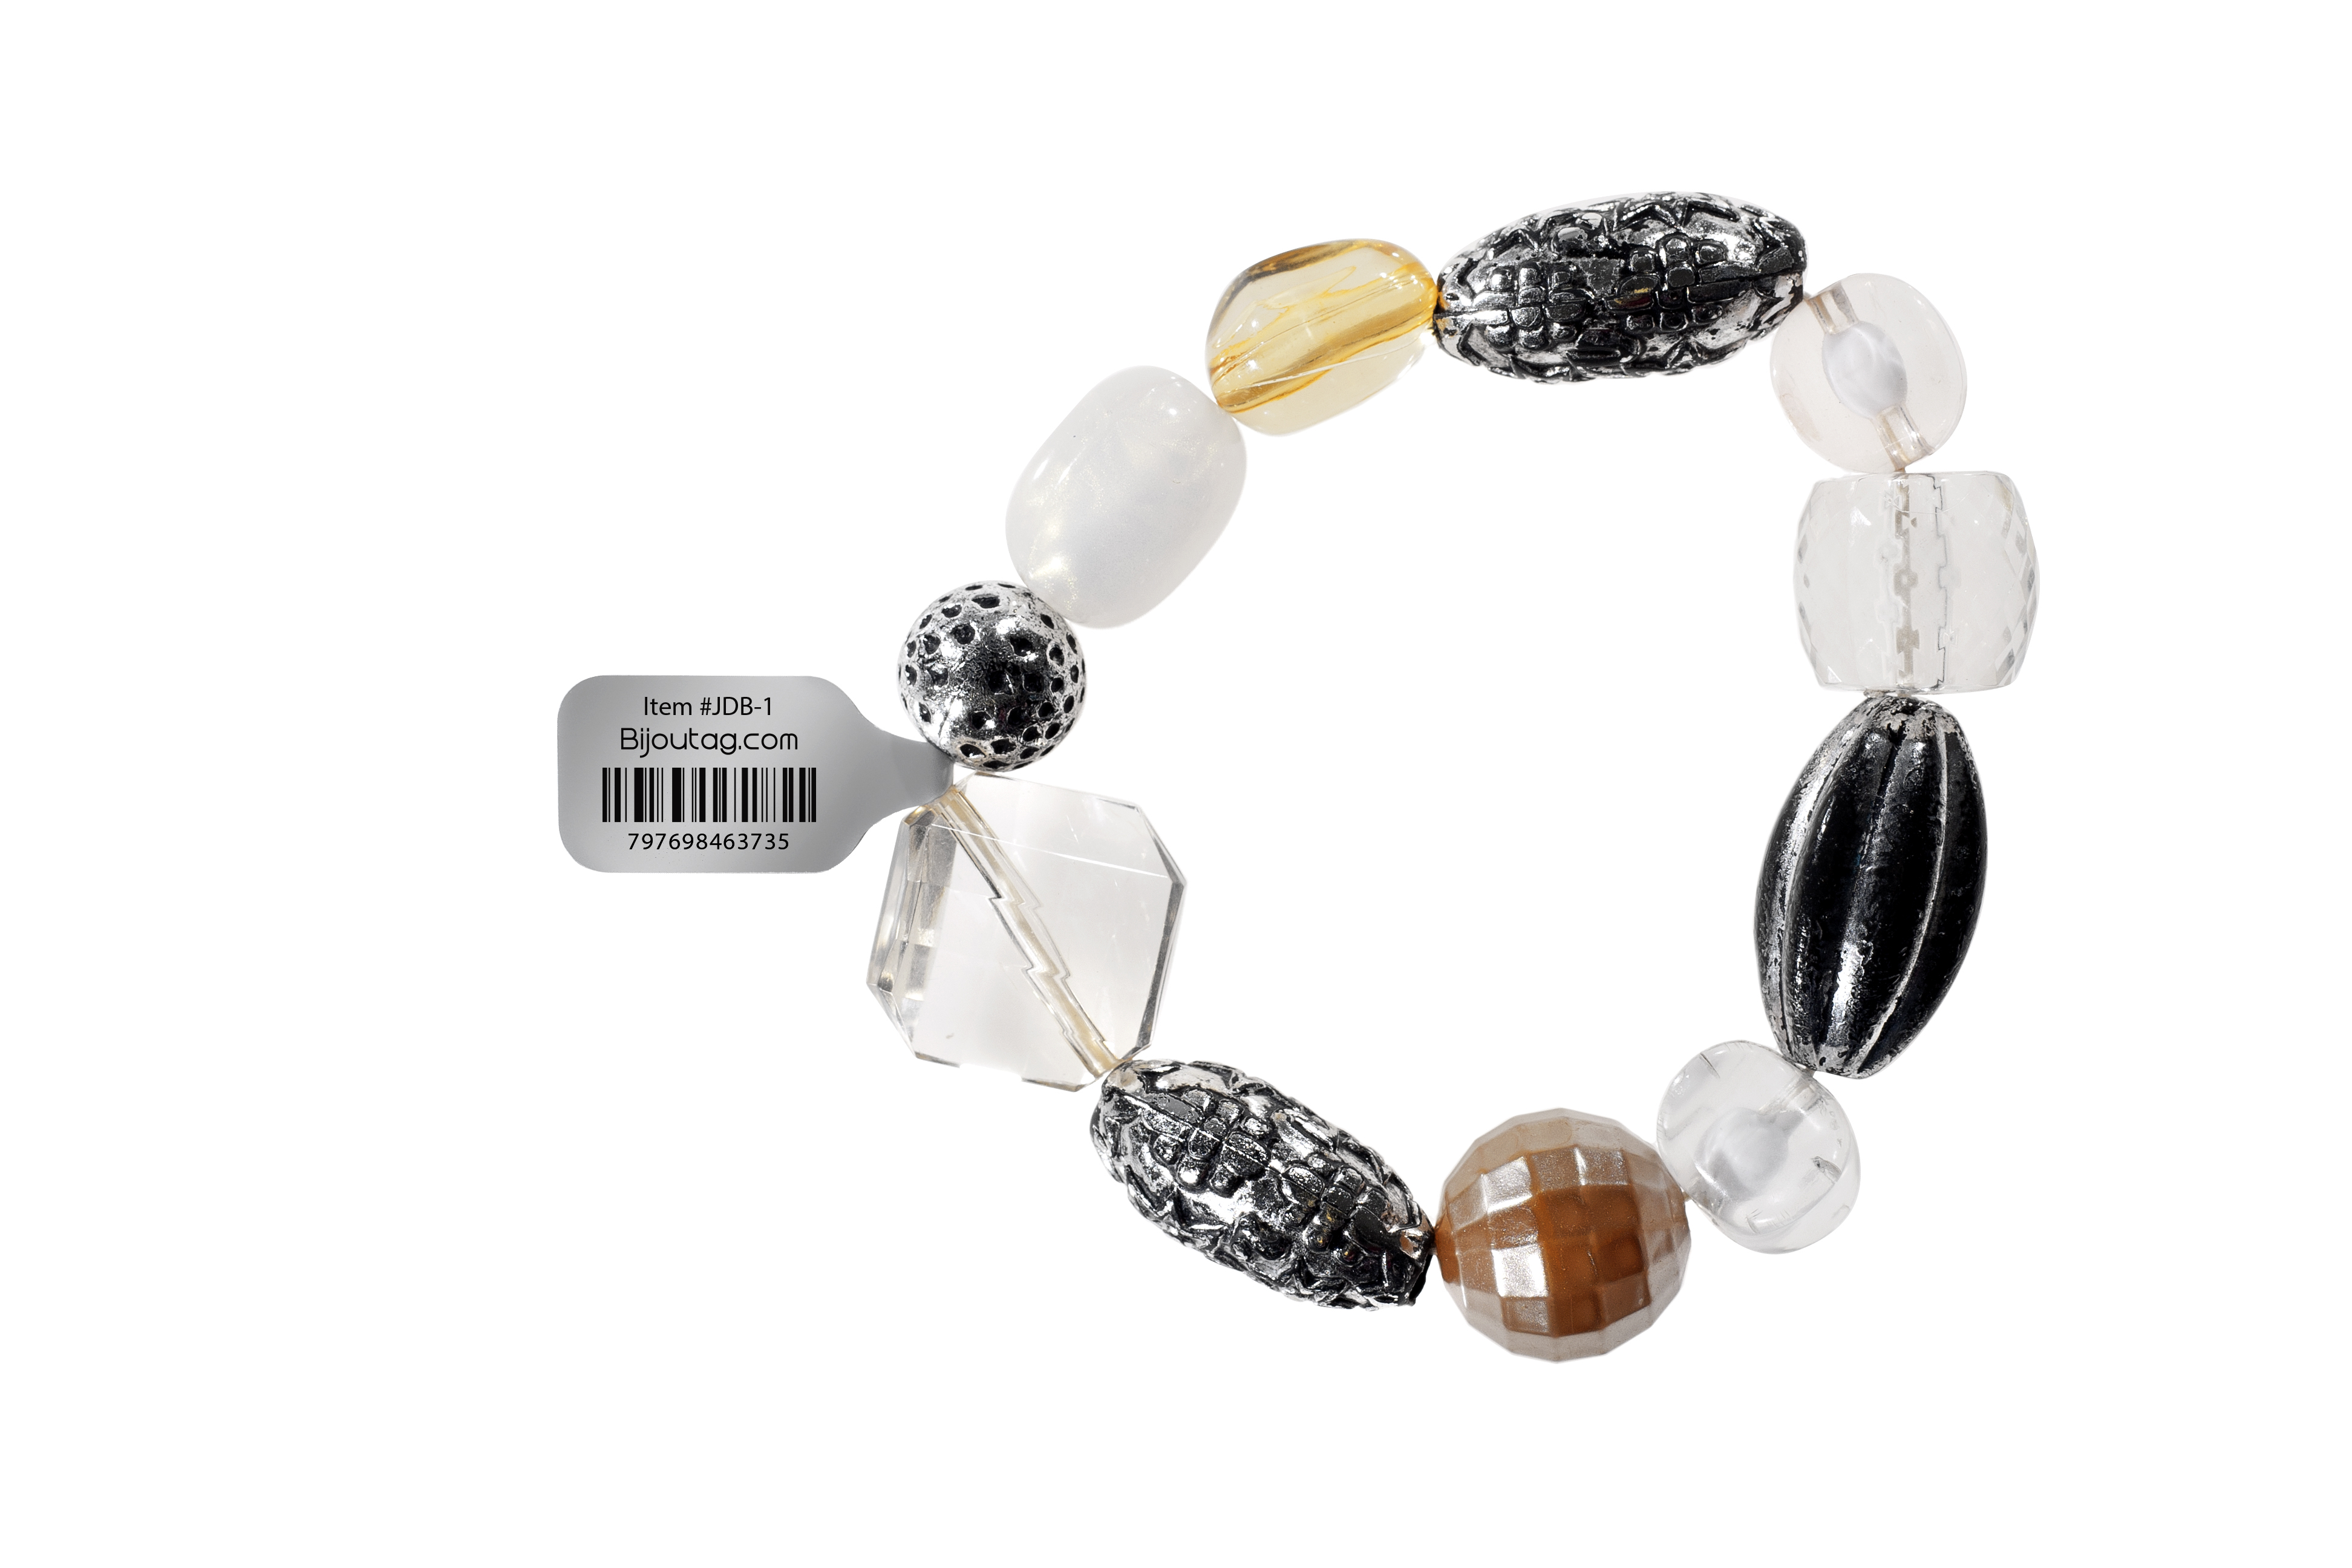 Jewelry Tag printed with a barcode for inventory control